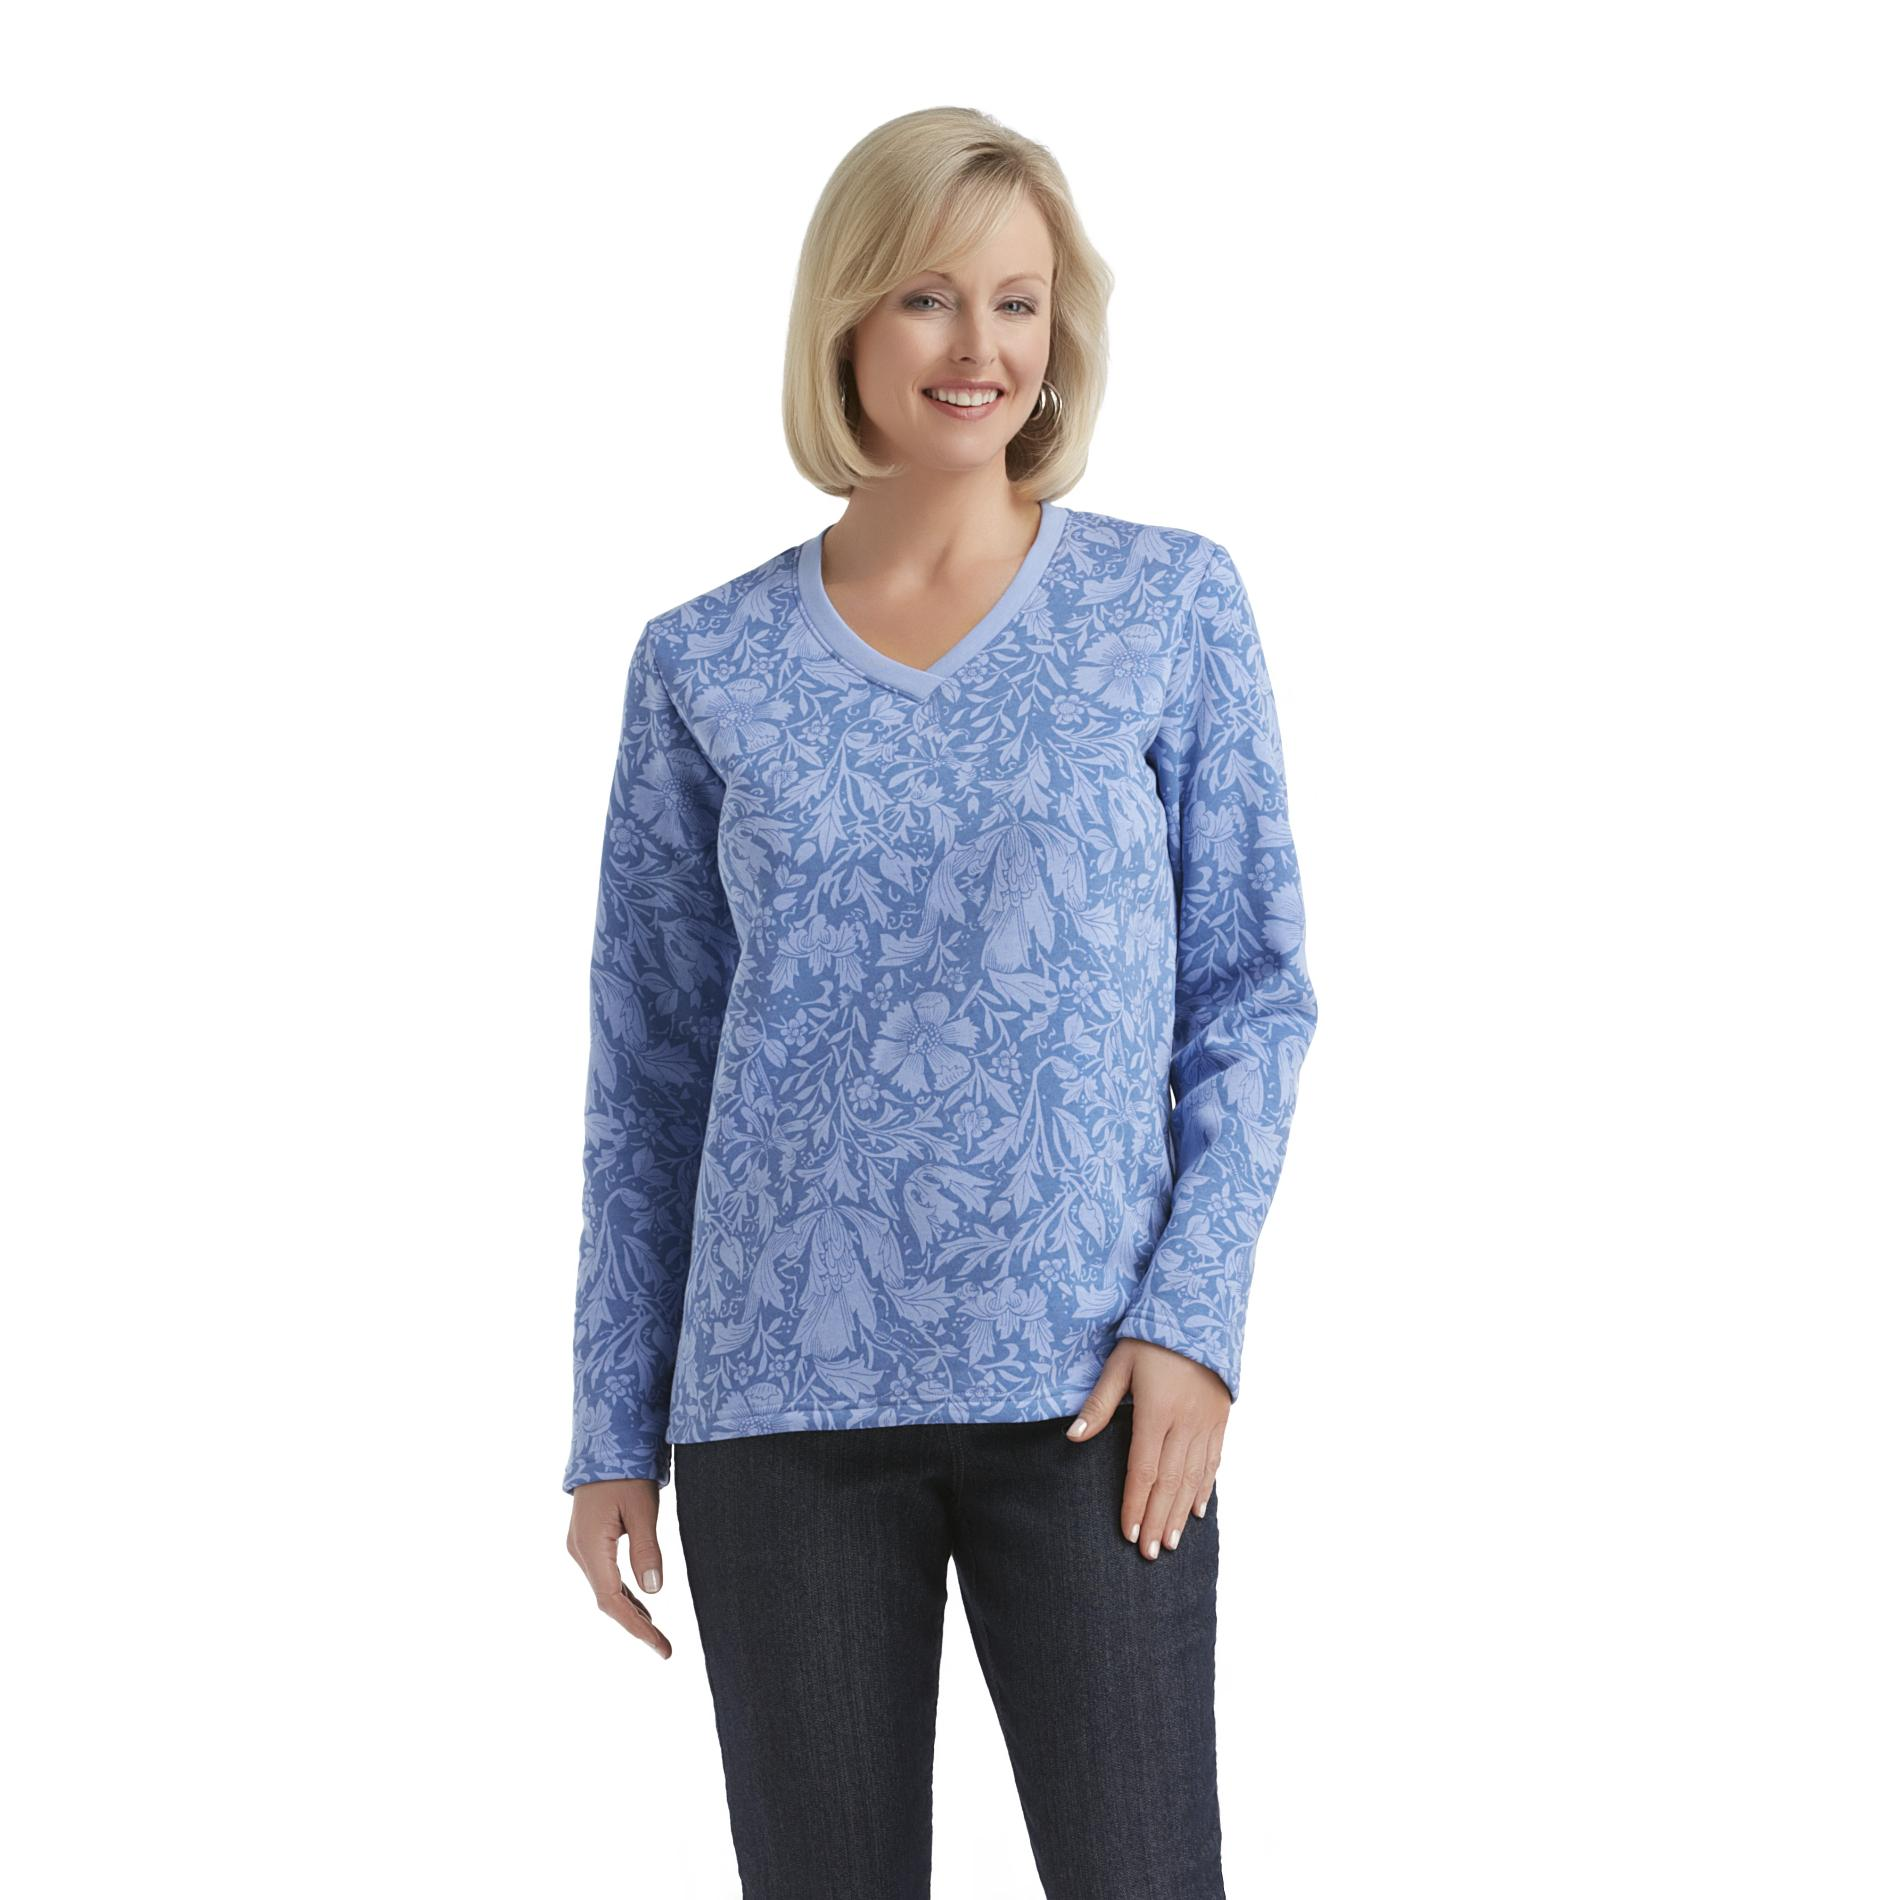 Laura Scott Women's Fleece V-Neck Sweatshirt - Paisley at Sears.com